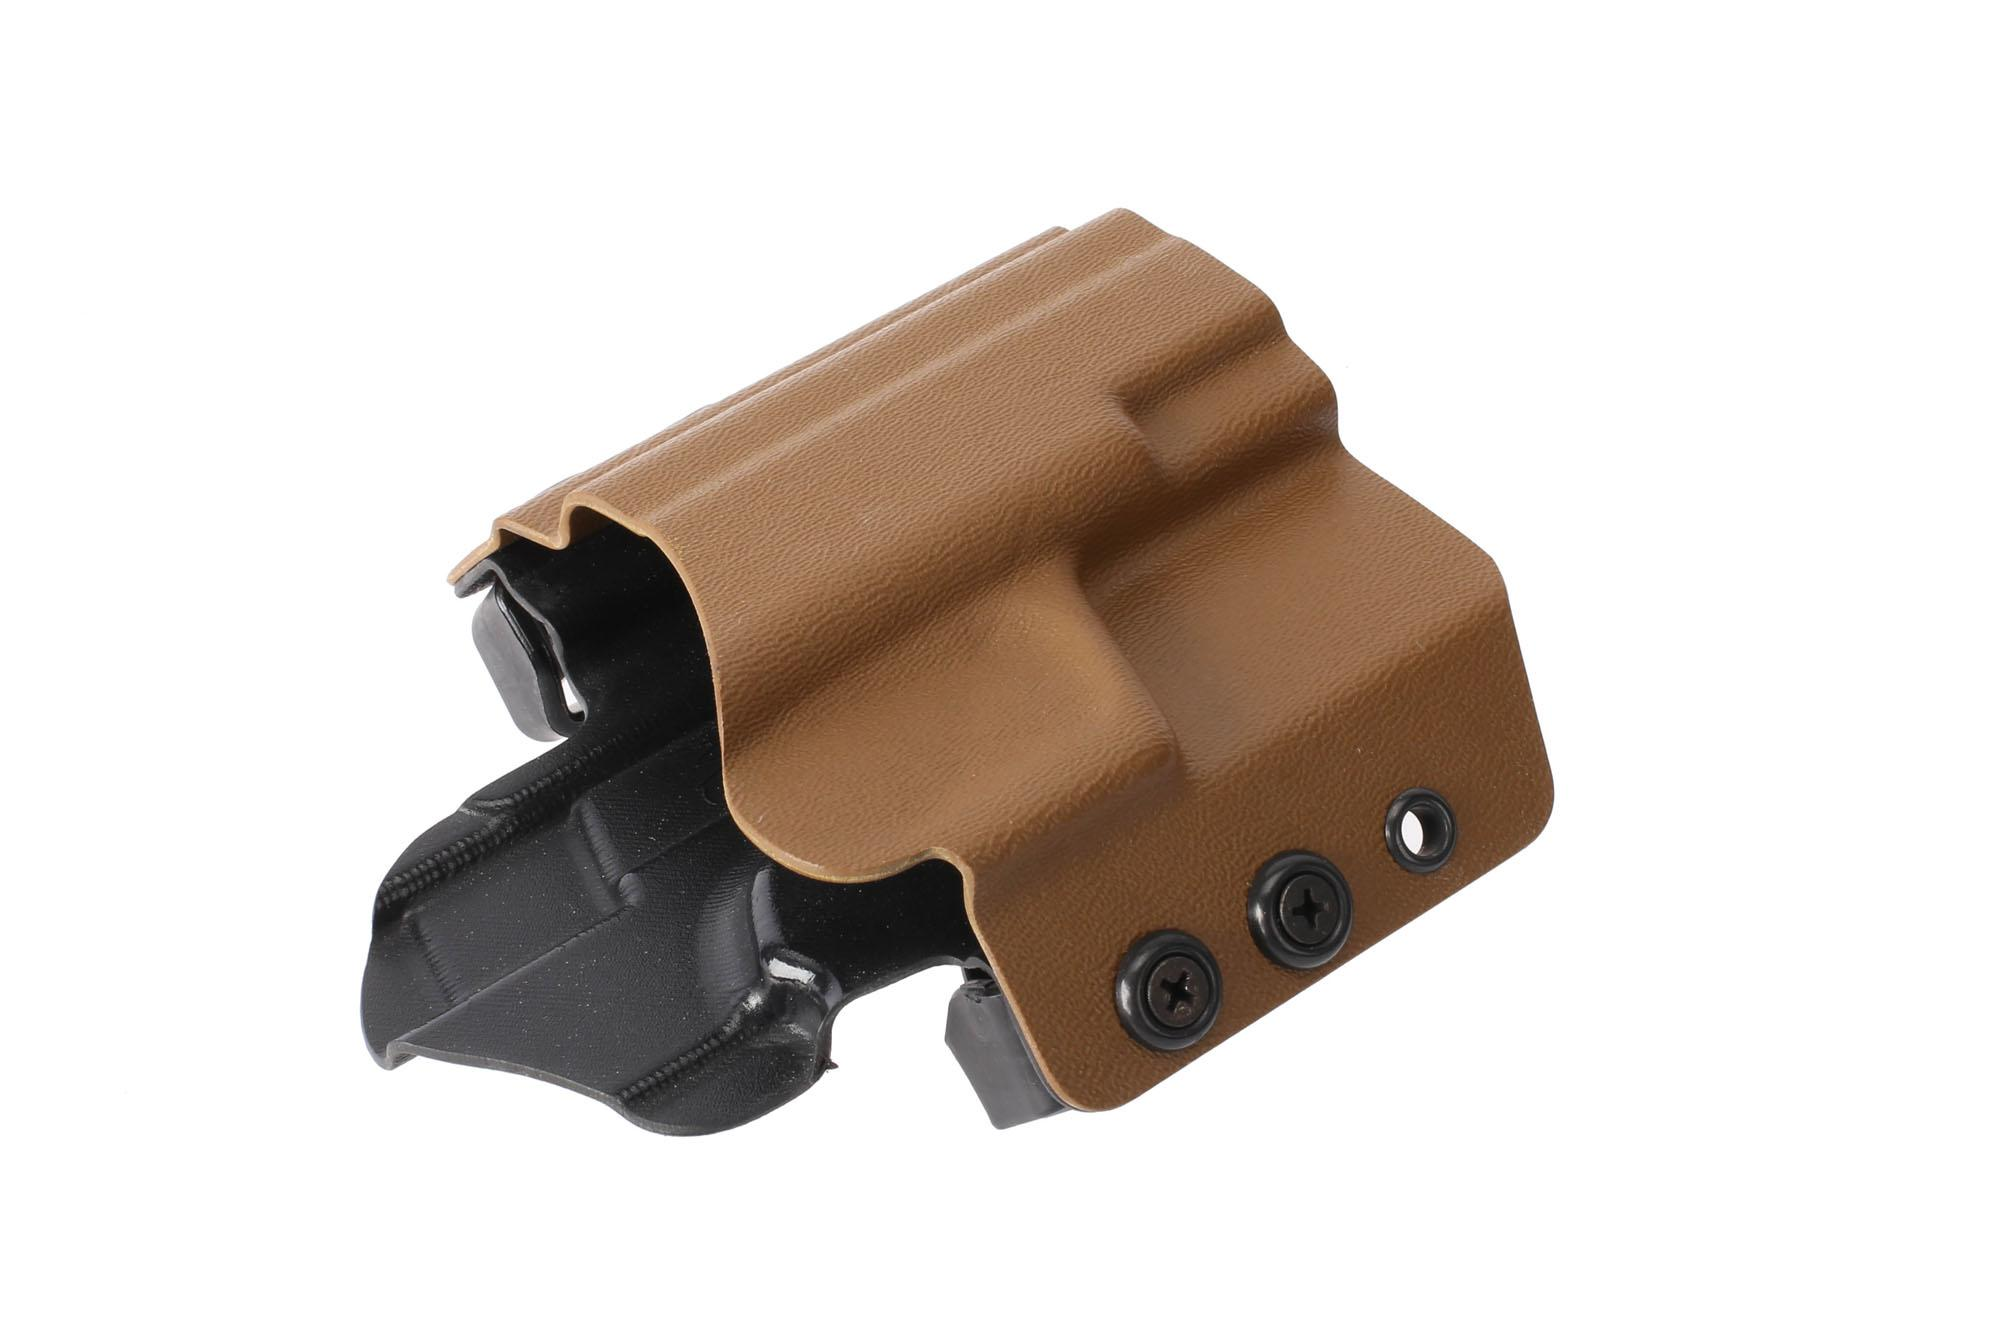 High Speed Gear's coyote brown OWB holster fits SIG Sauer P320 Compact pistols